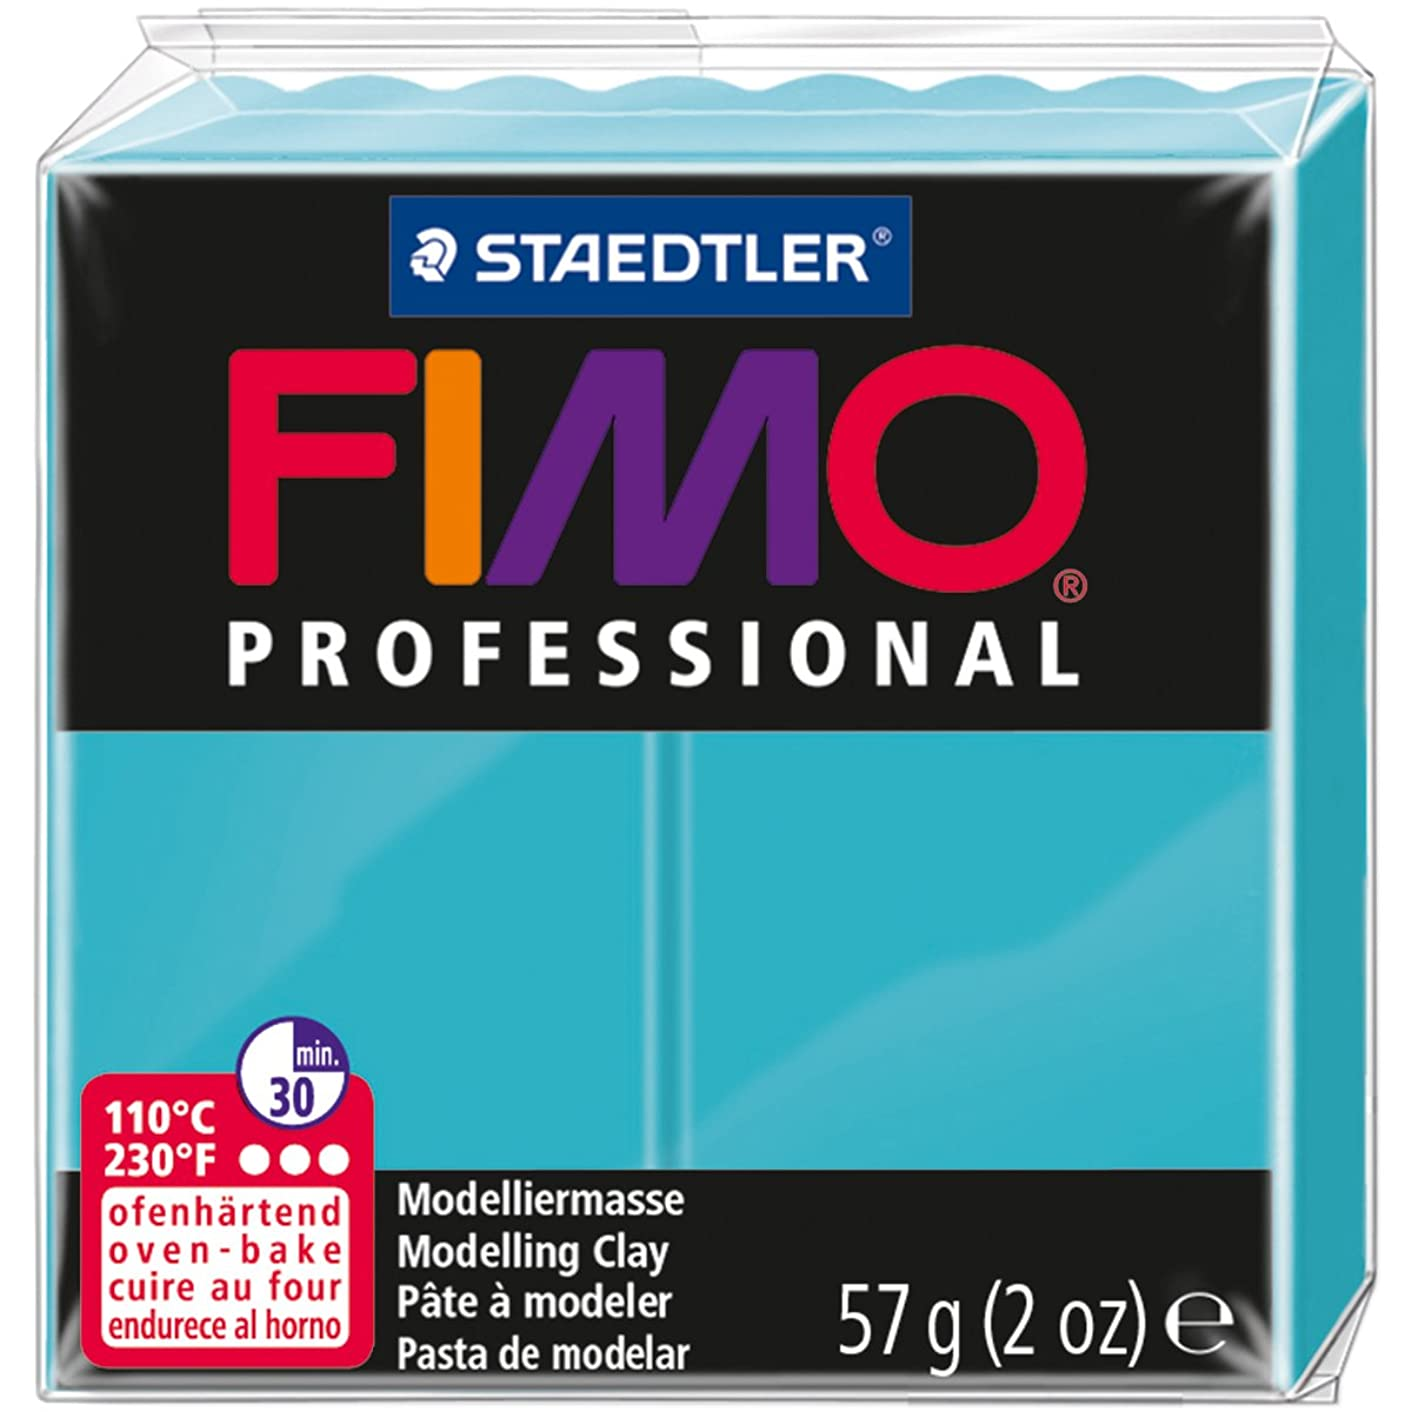 STAEDTLER Fimo Professional Soft Polymer Clay, 2 oz, Turquoise